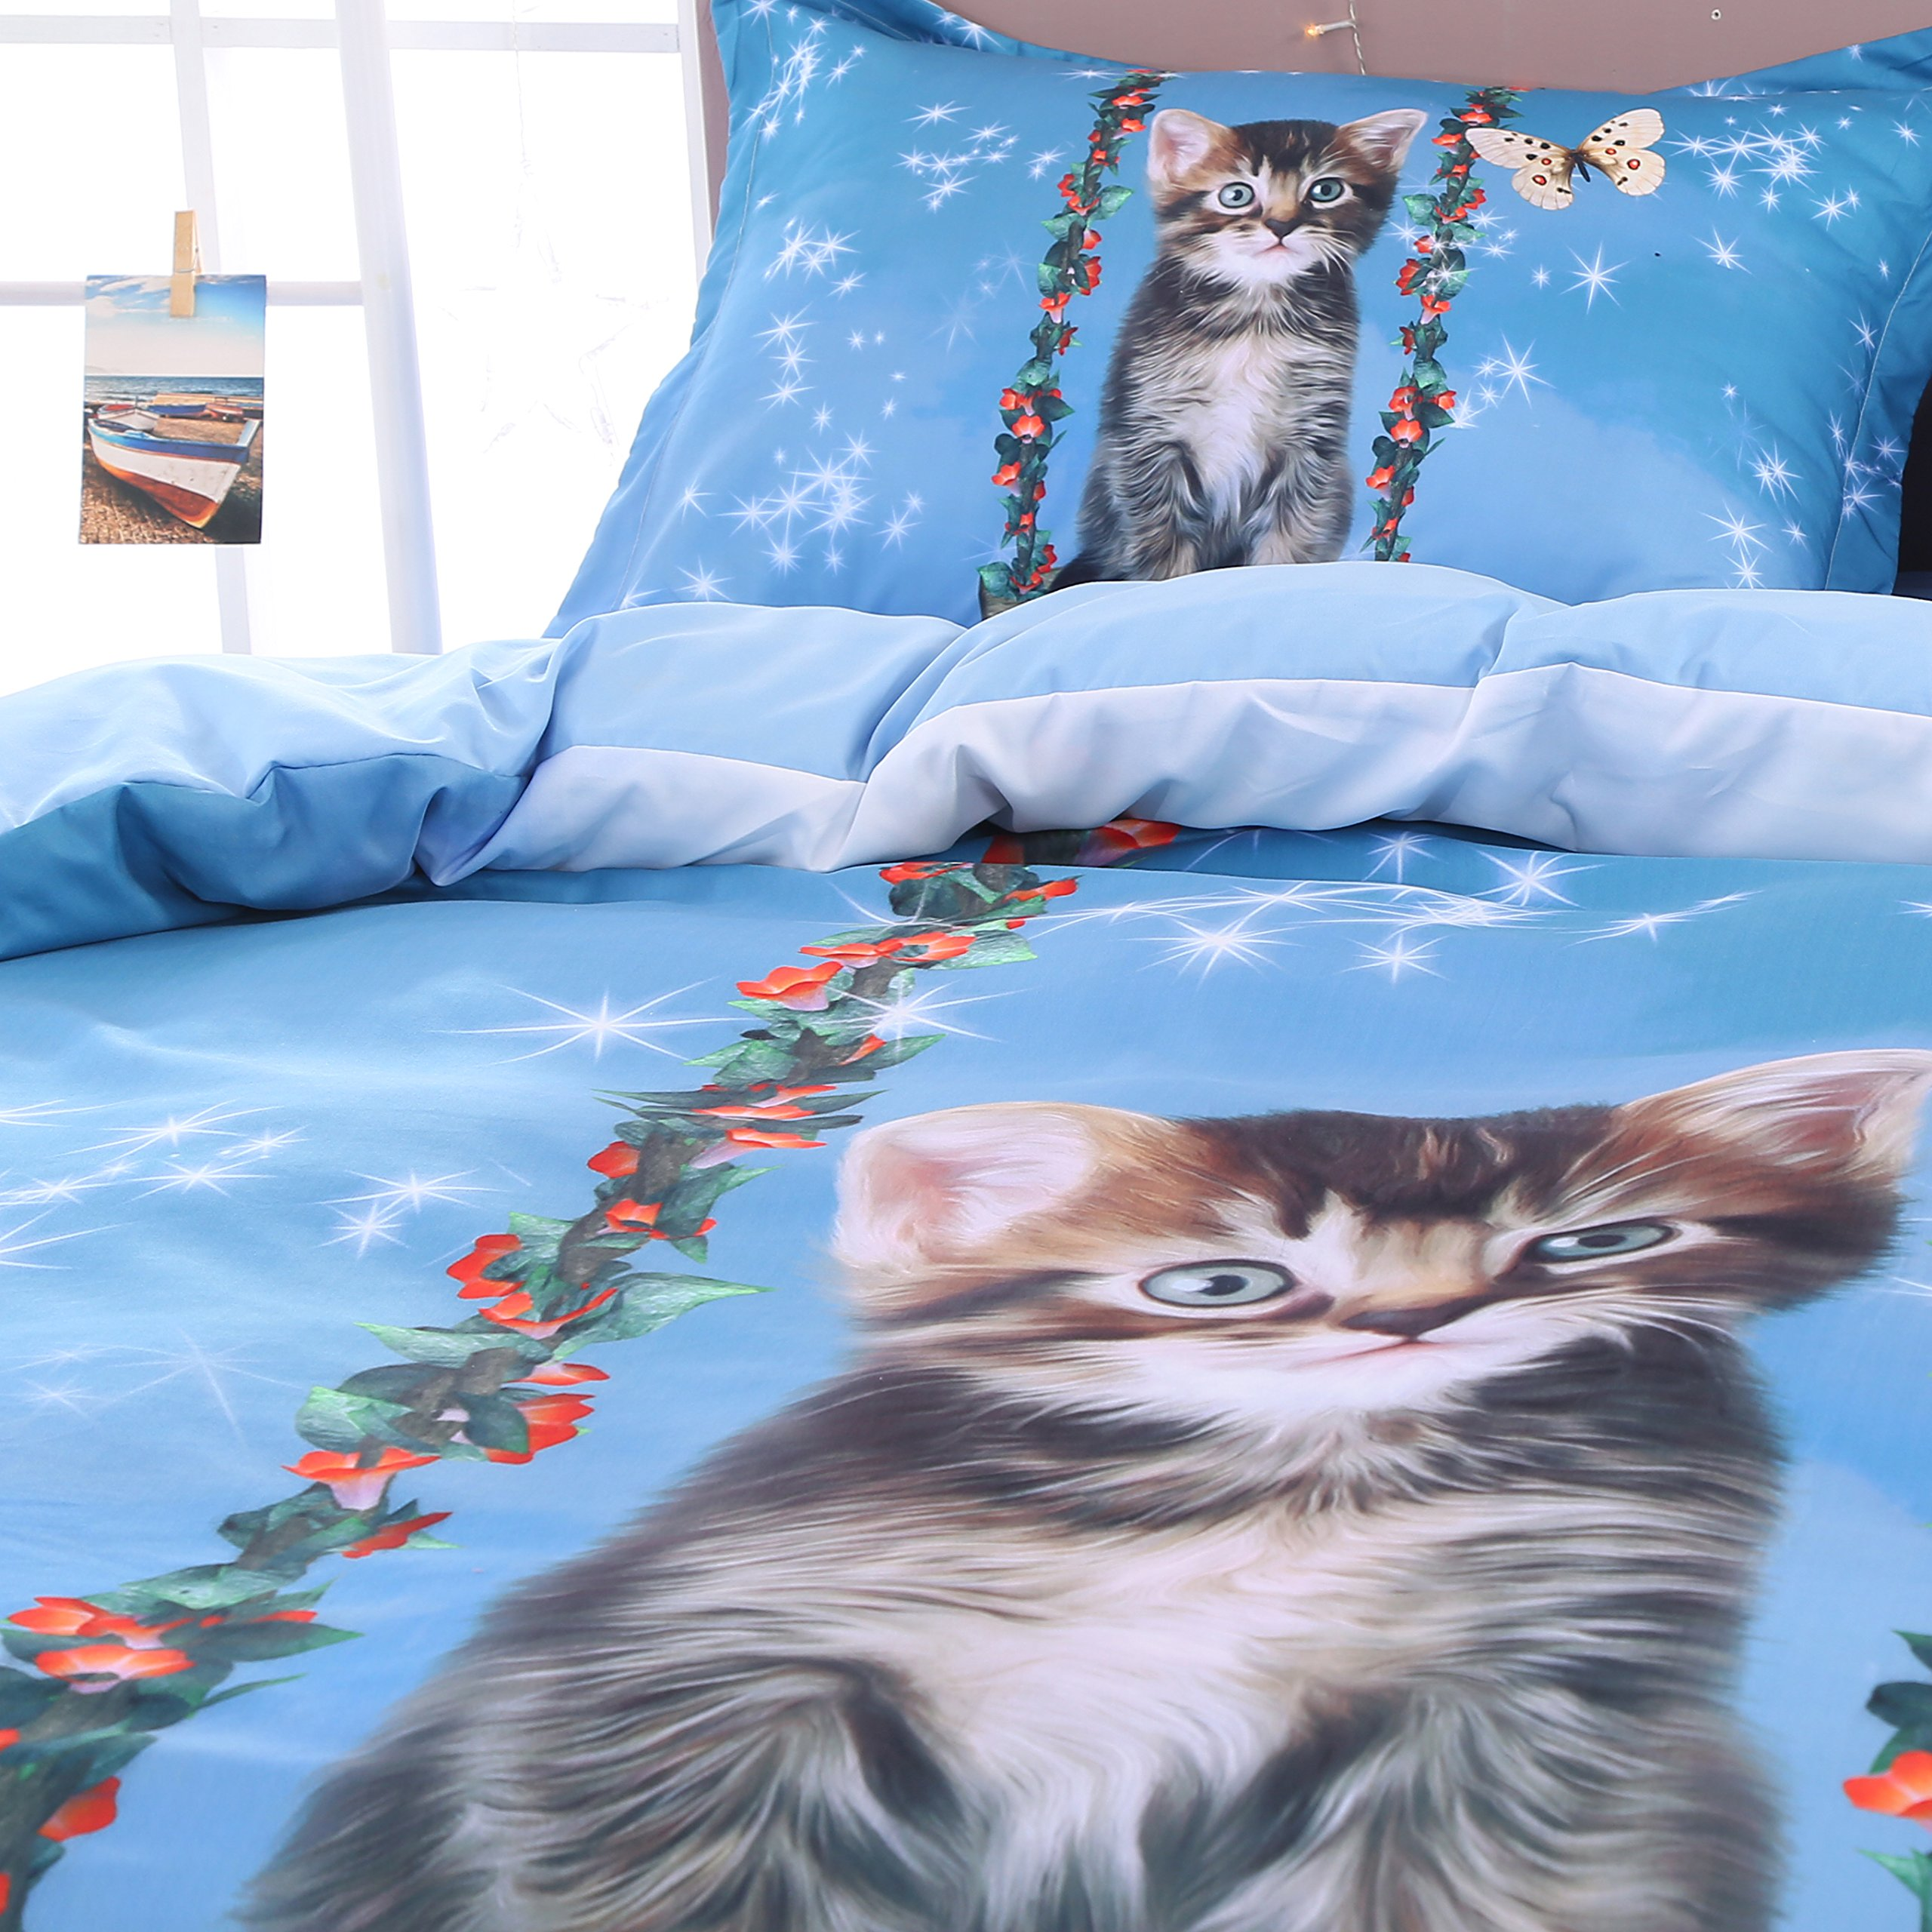 Beddinginn Cute Cat Swing Bedding Set Girls Loves 3d Duvet Cover Set Butterfly Print Girls Bed Set King Size by Beddinginn (Image #4)